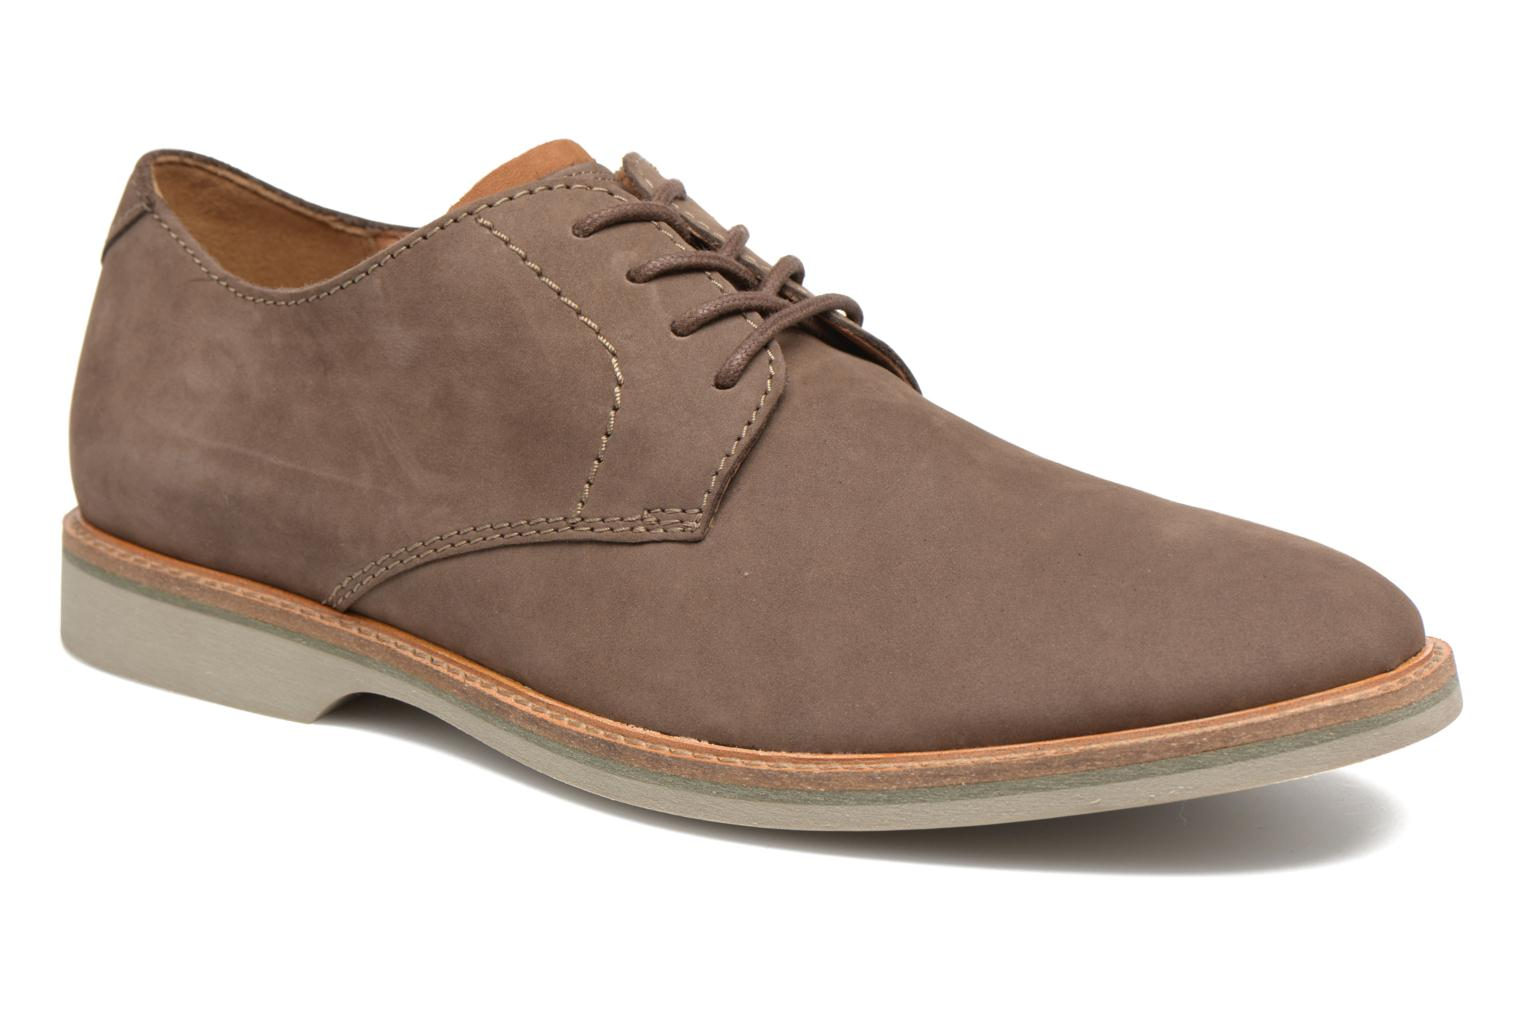 Marques Chaussure homme Clarks homme Atticus Lace Taupe Nubuck